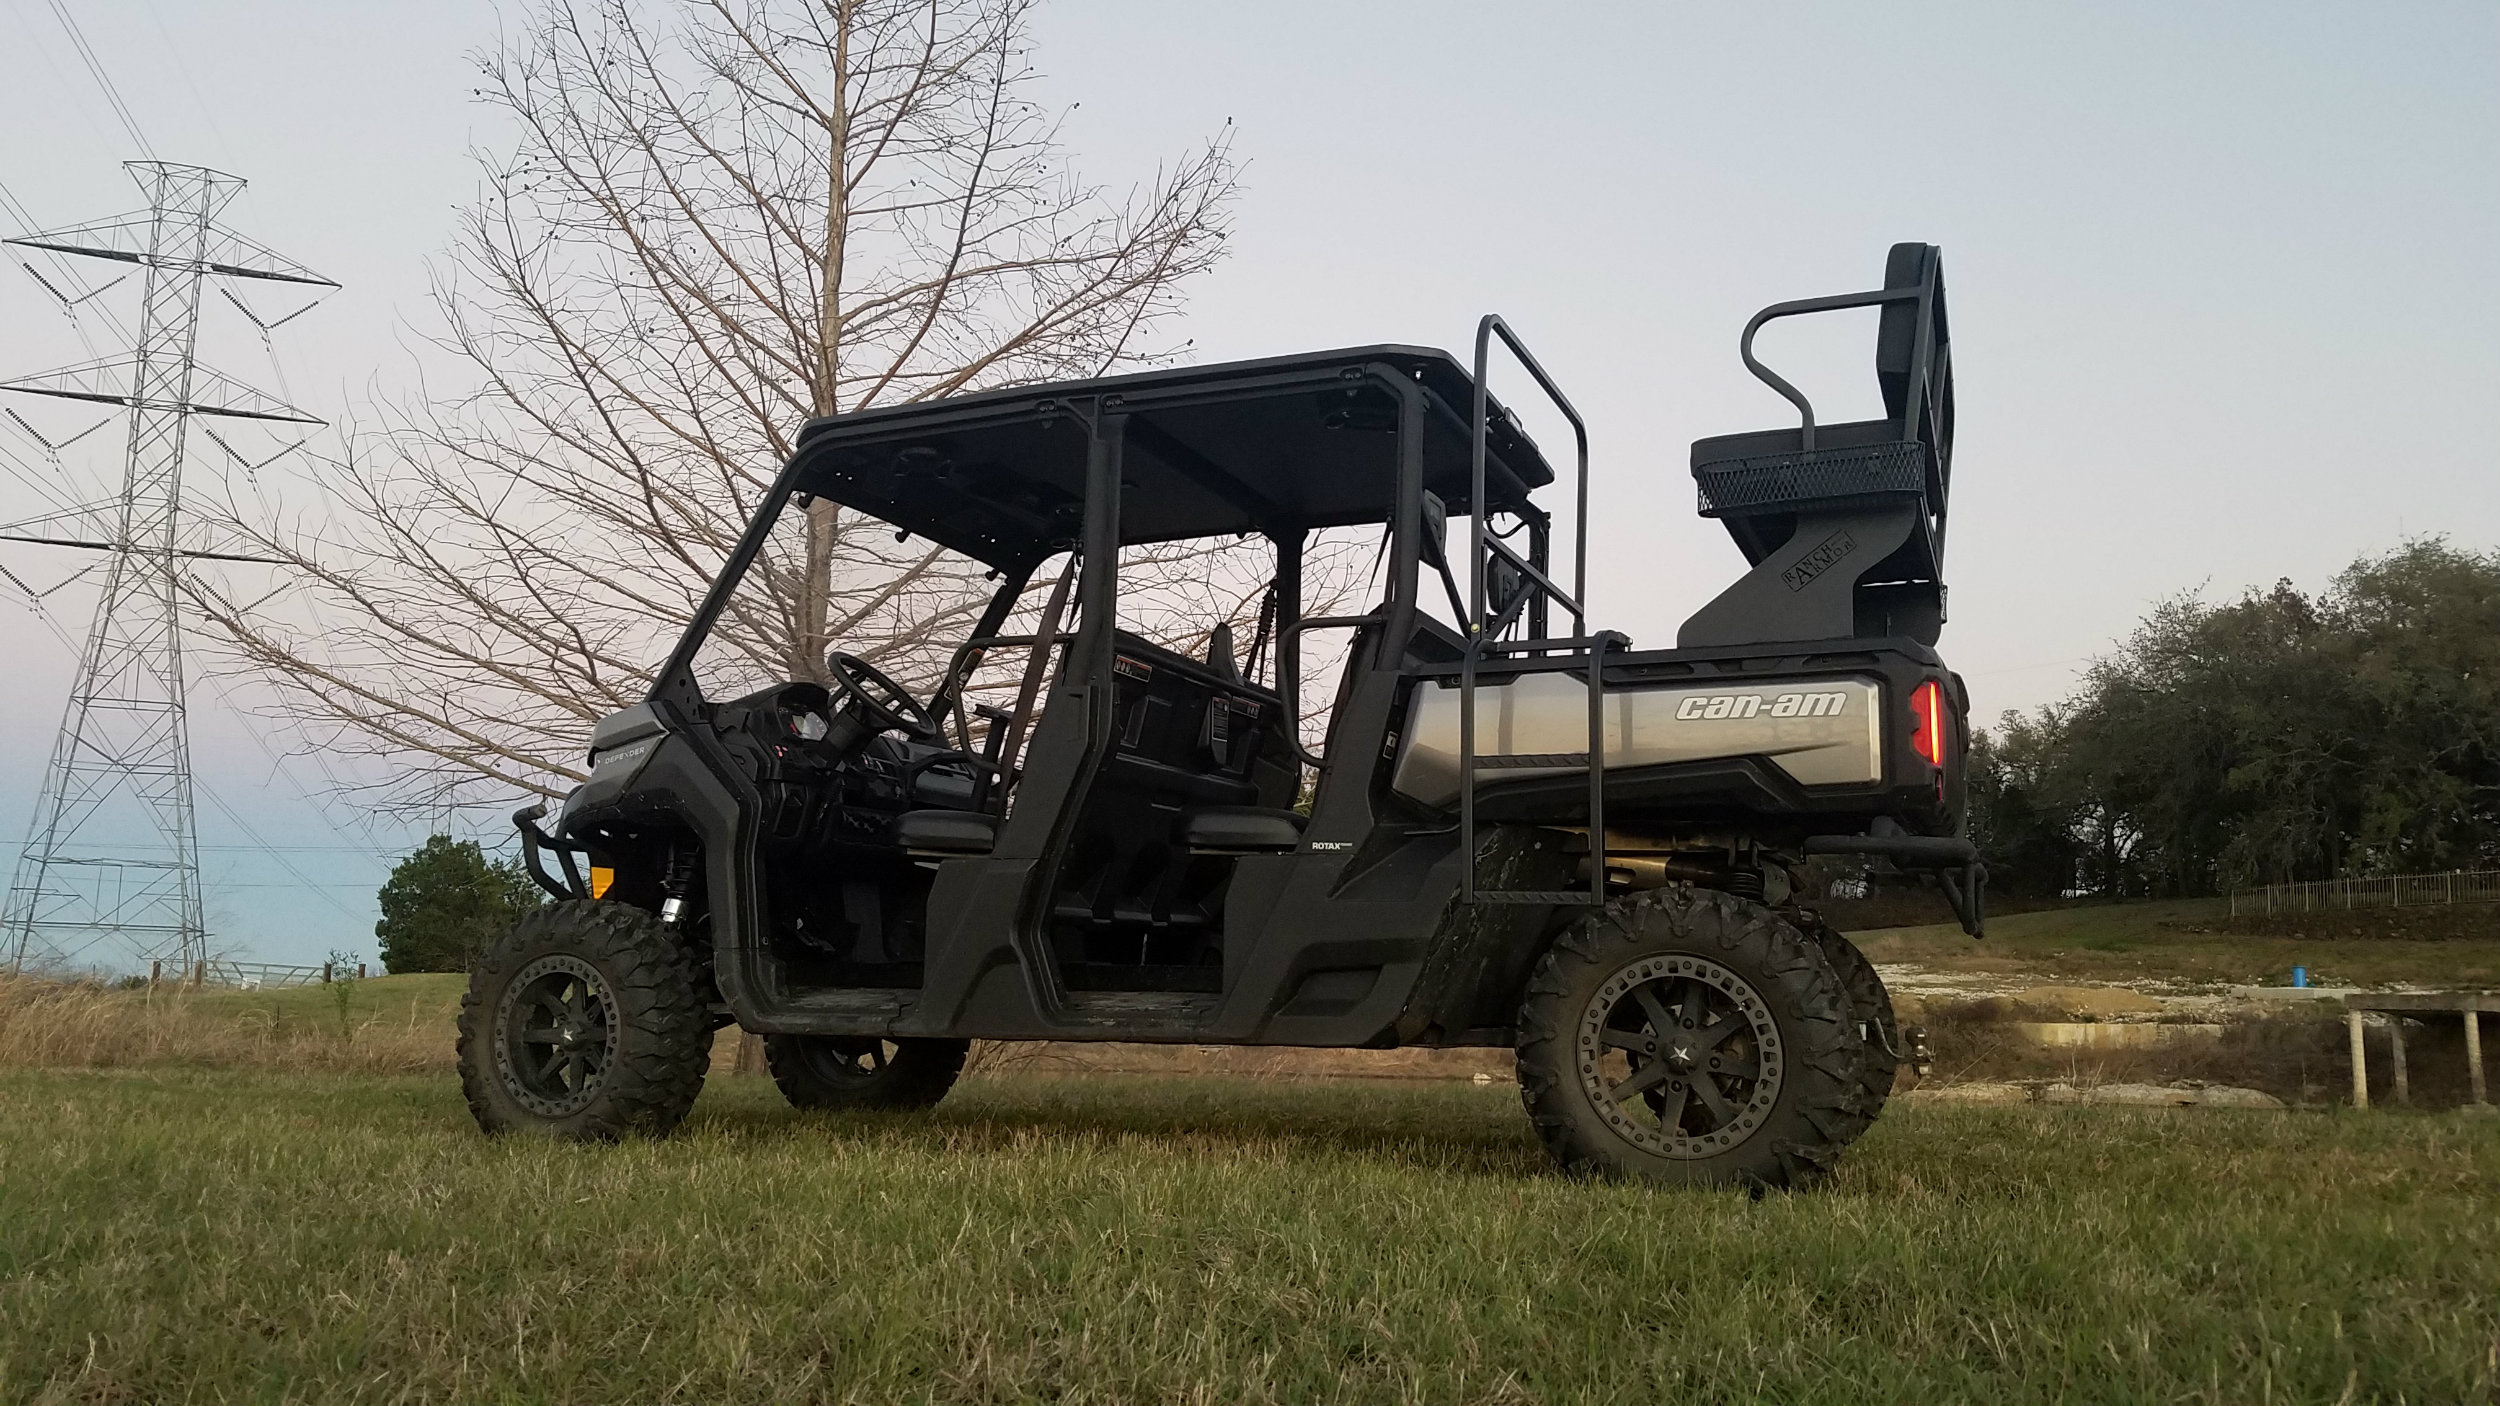 canam-defender-high-seat-hunting-rack.jpg